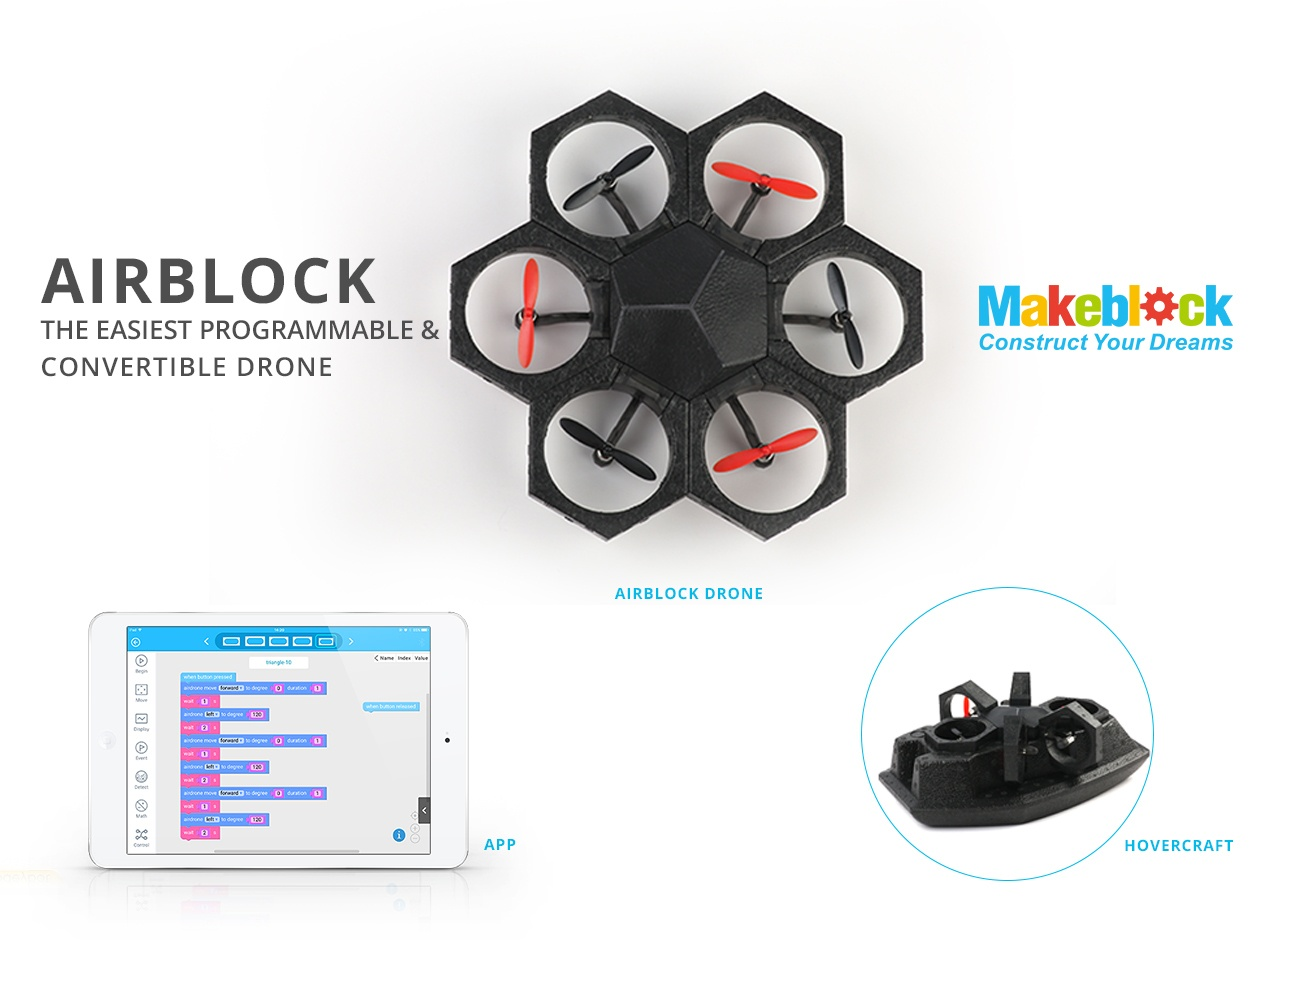 AIRBLOCK – The Easiest Programmable And Convertible Drone